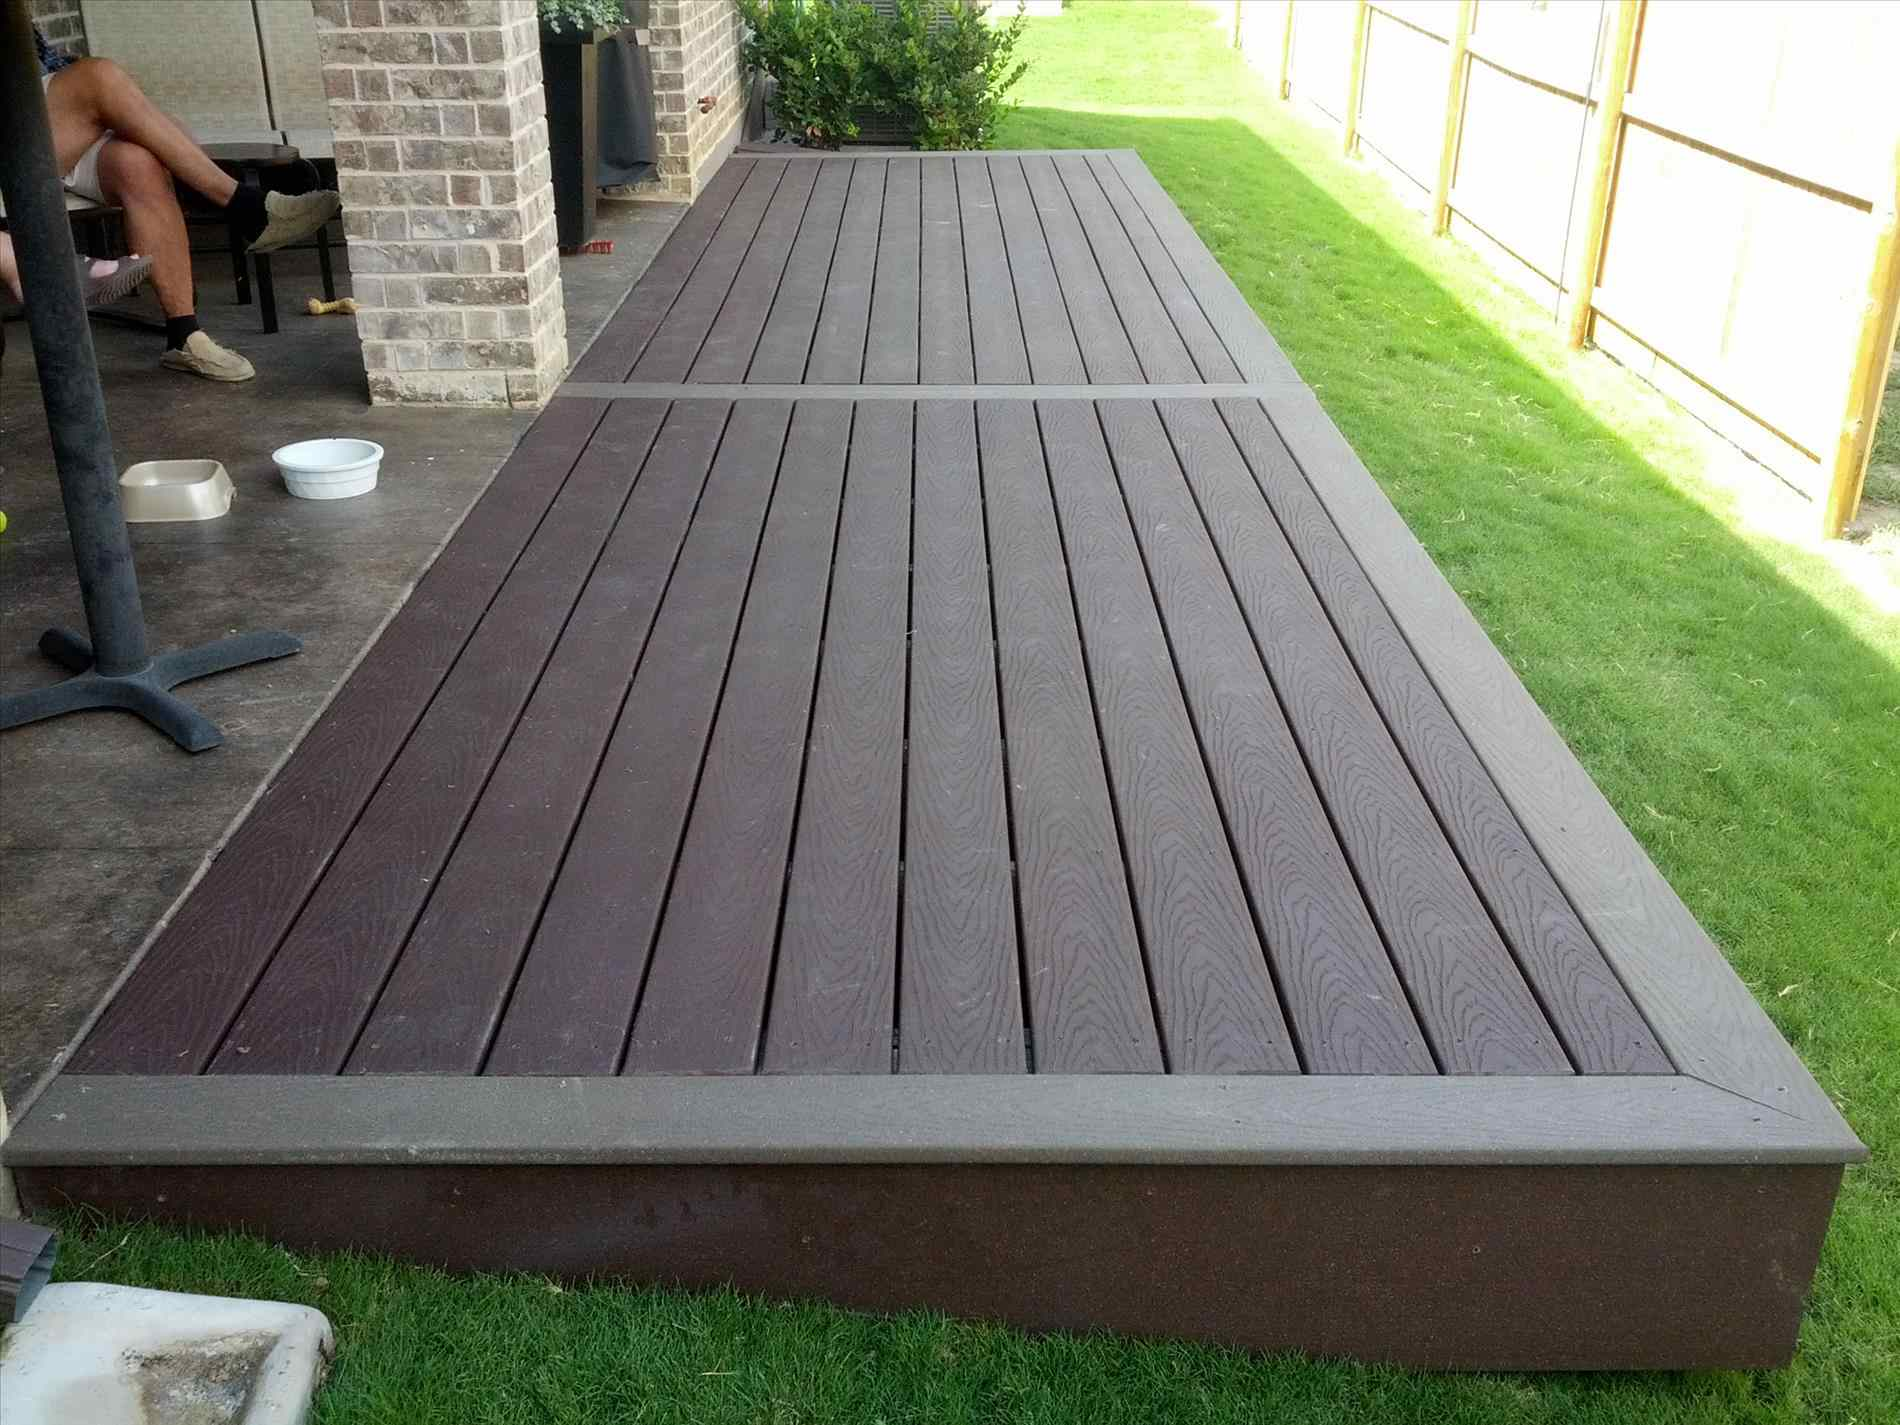 Installing Composite Decking | Composite Decking for Stairs | Composite Decking Installation